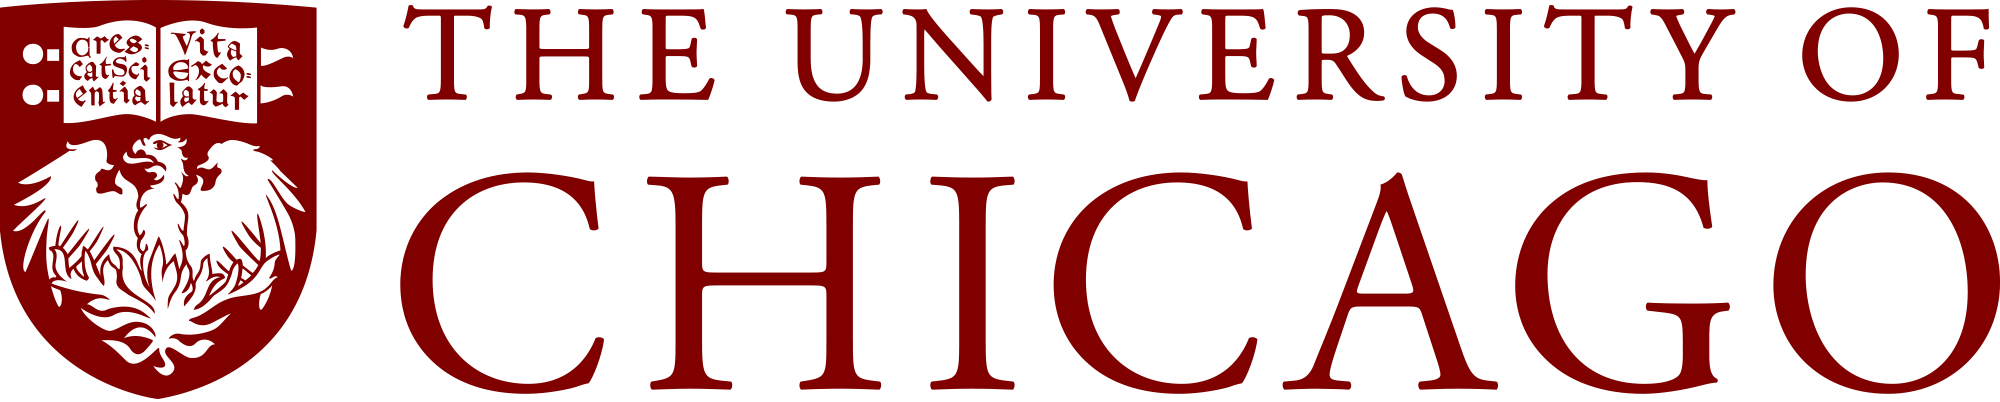 University of Chicago Funding Portal